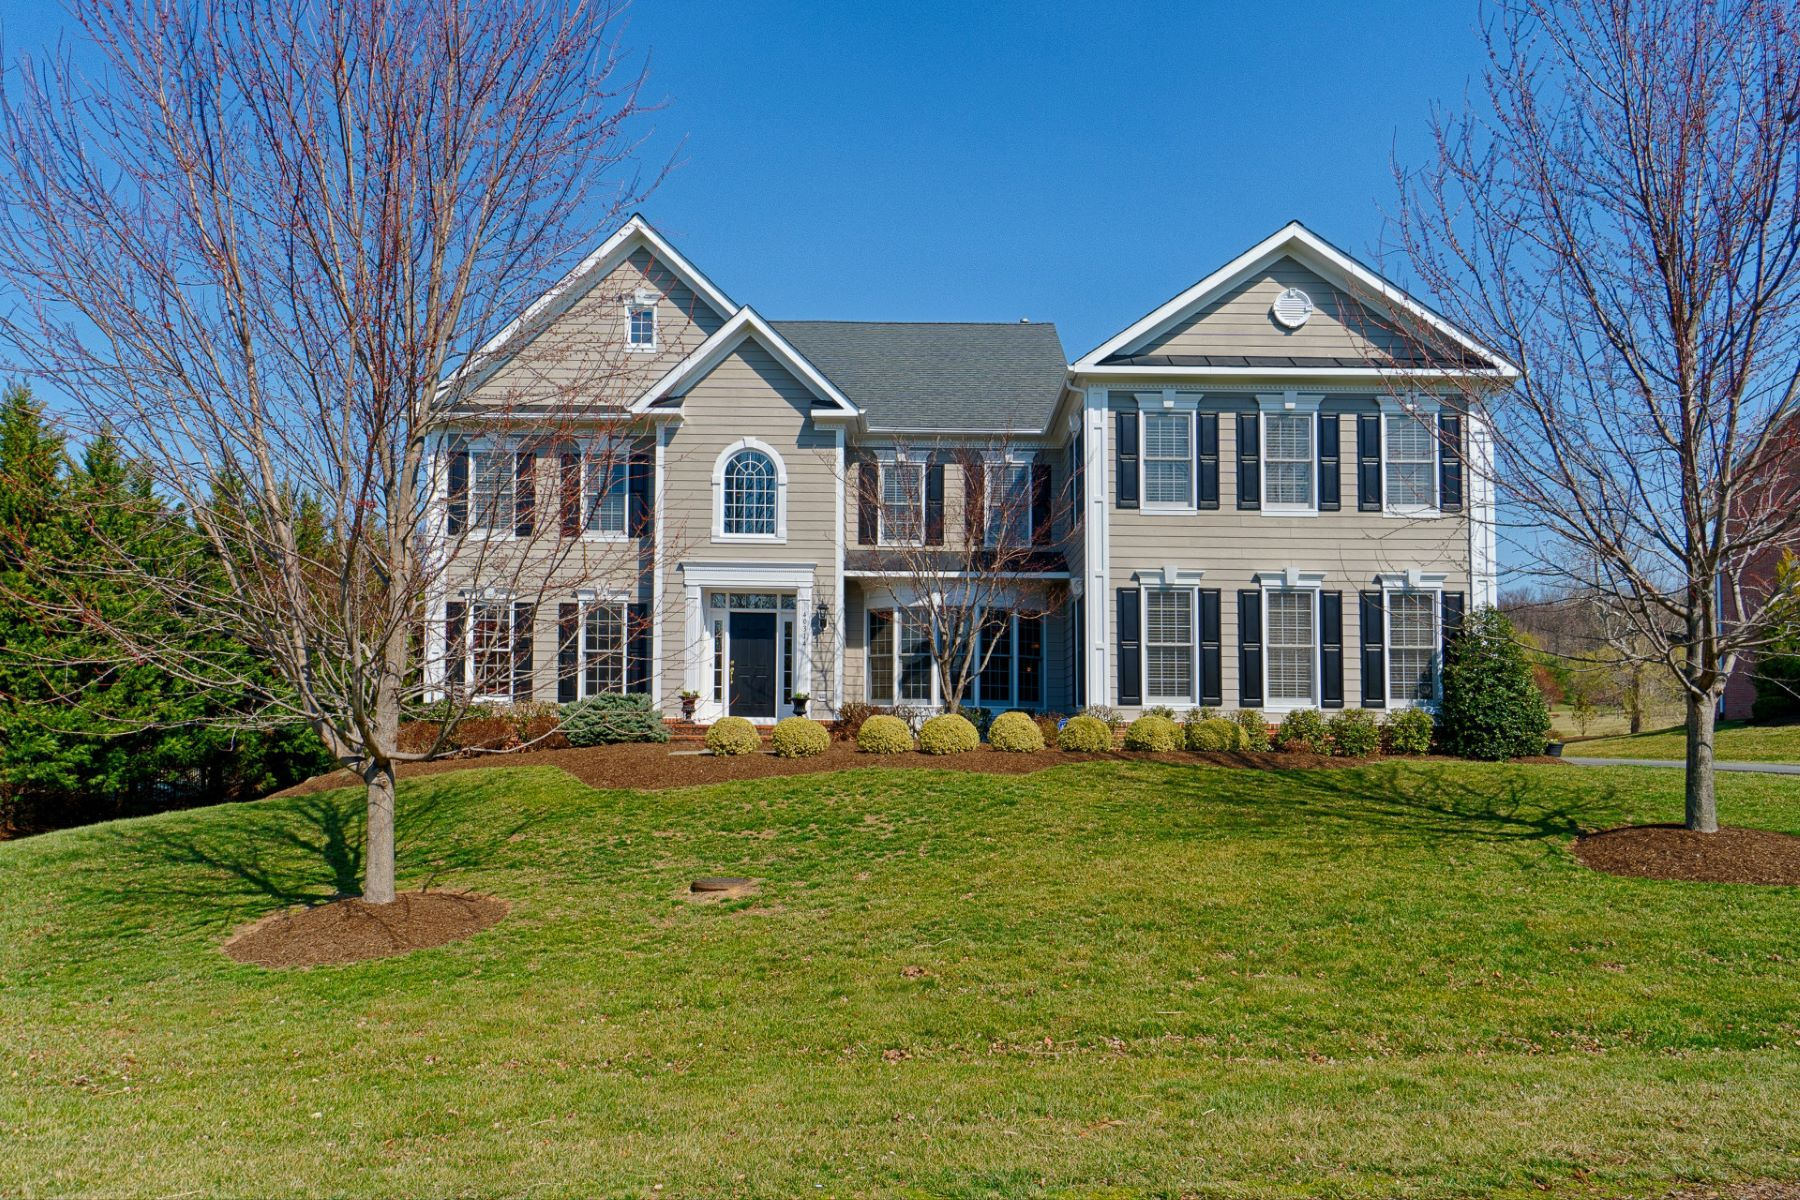 Single Family Home for Sale at Elegant Country Estate 40314 Iron Liege Leesburg, Virginia, 20176 United States